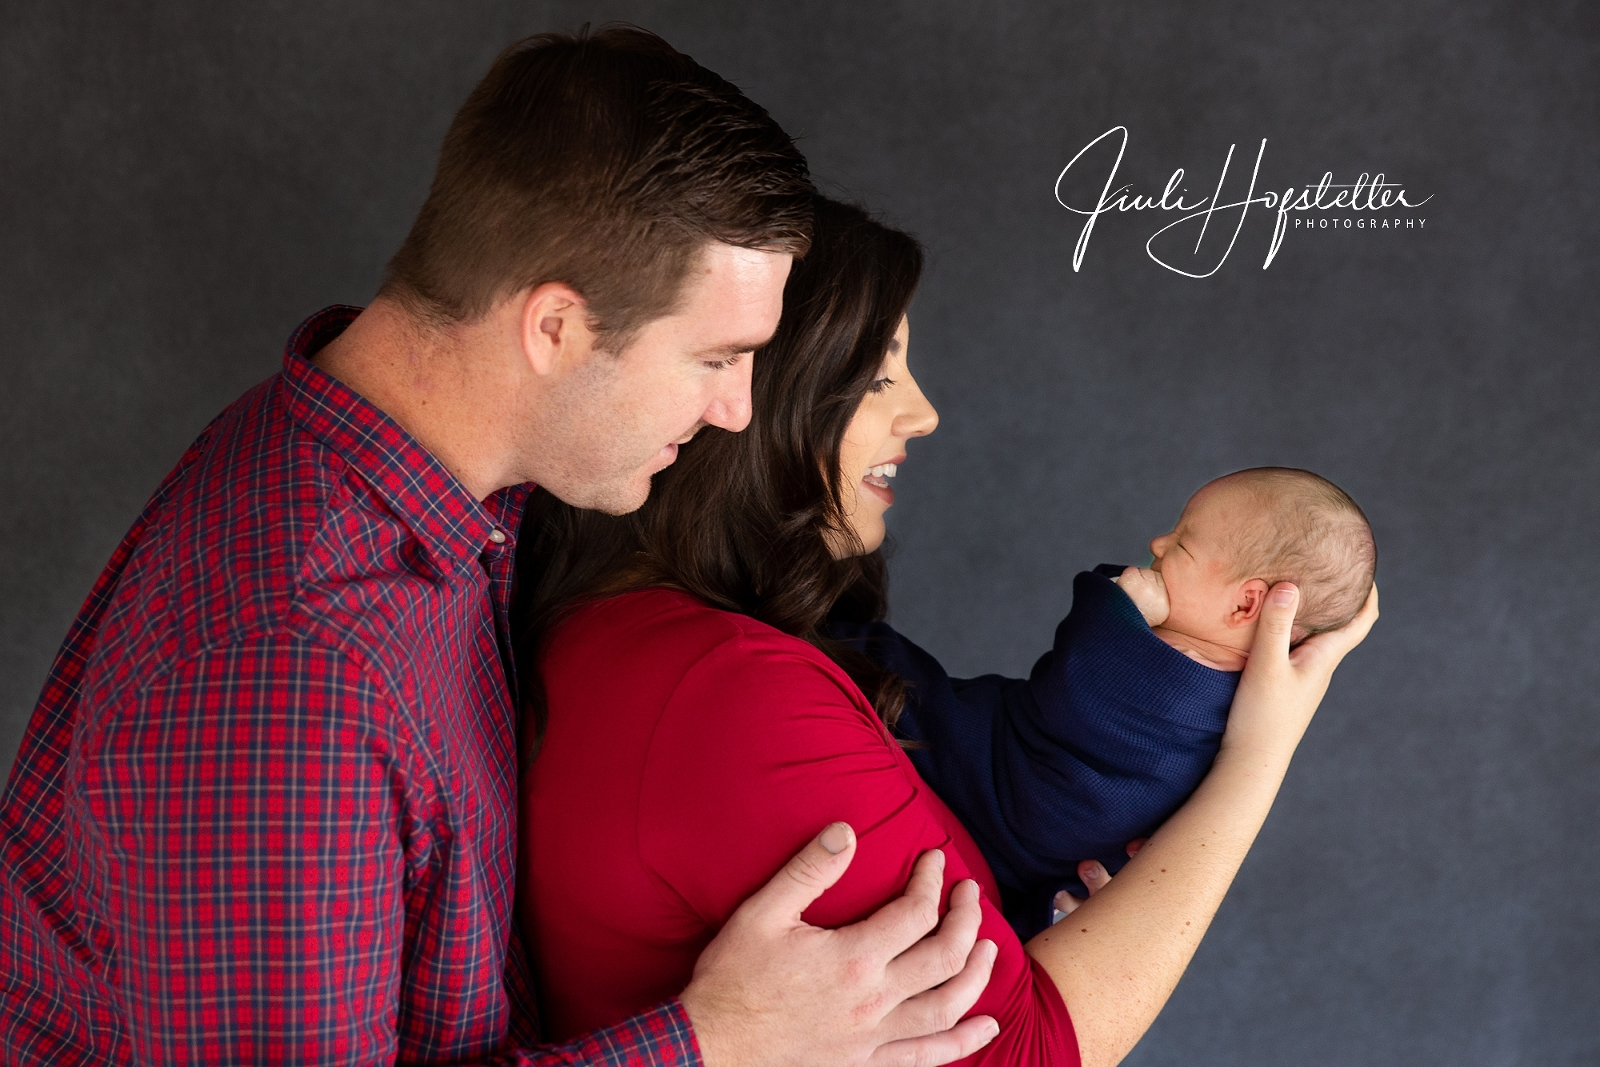 Newborn Photography Pensacola Newborn Pensacola Newborn Photography Florida Newborn Photography Newborn Studio Photography J Hofstetter Photography Studio Newborn Photography Pensacola Newborn Photo Studio in Pensacola Florida